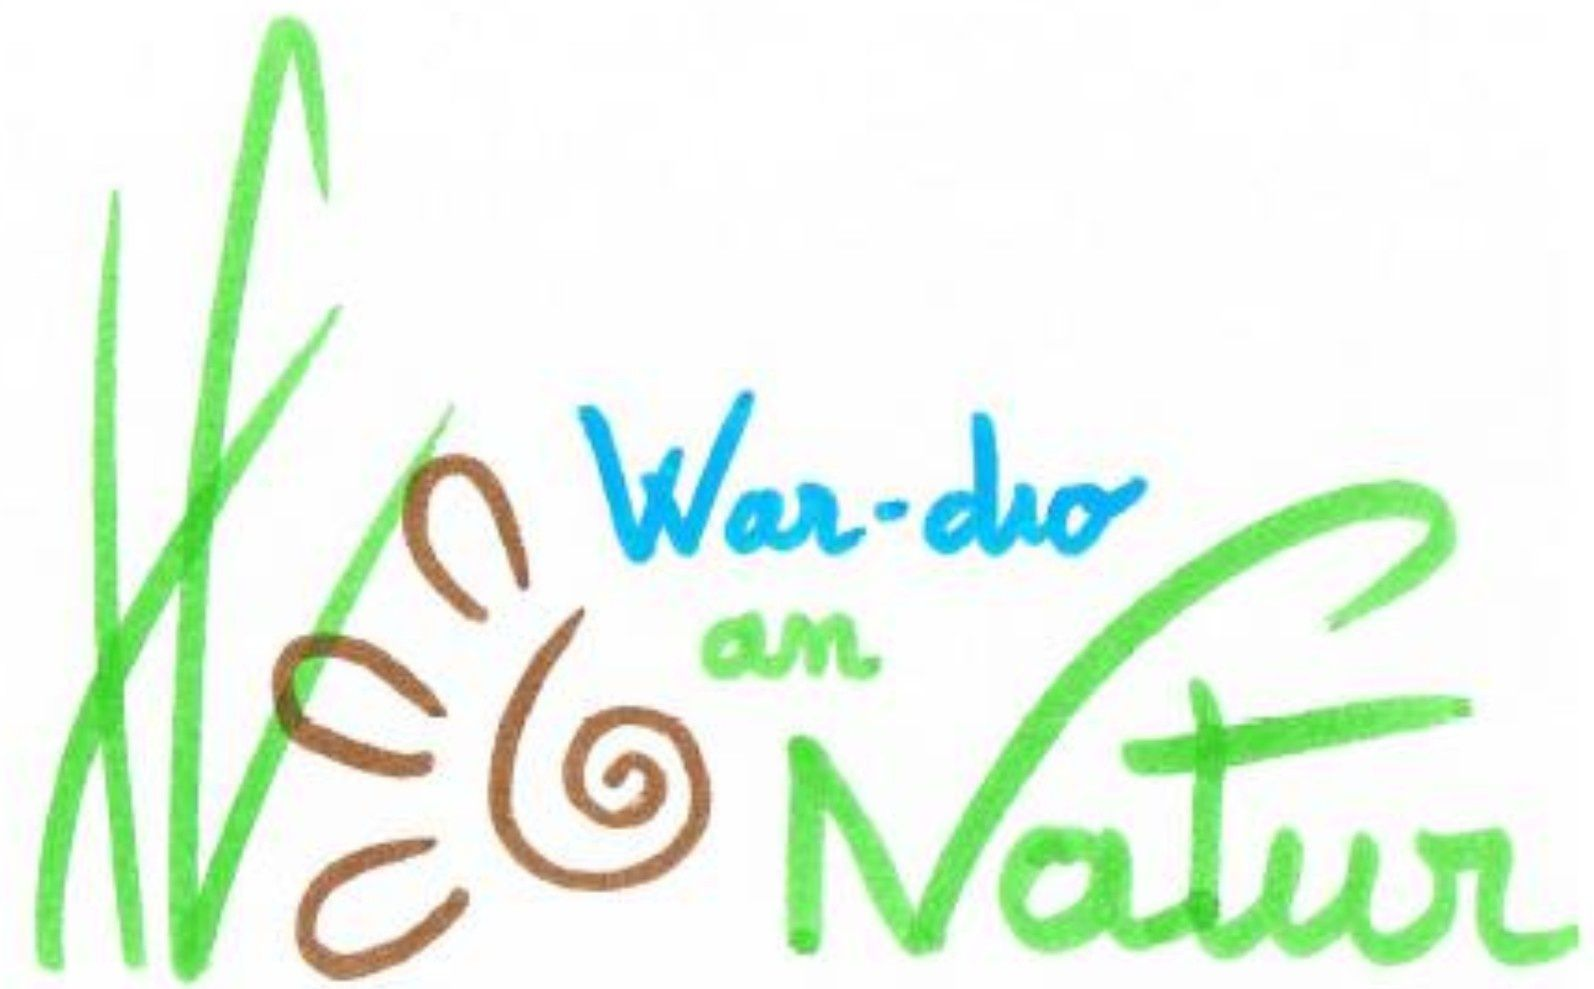 War dro an nature